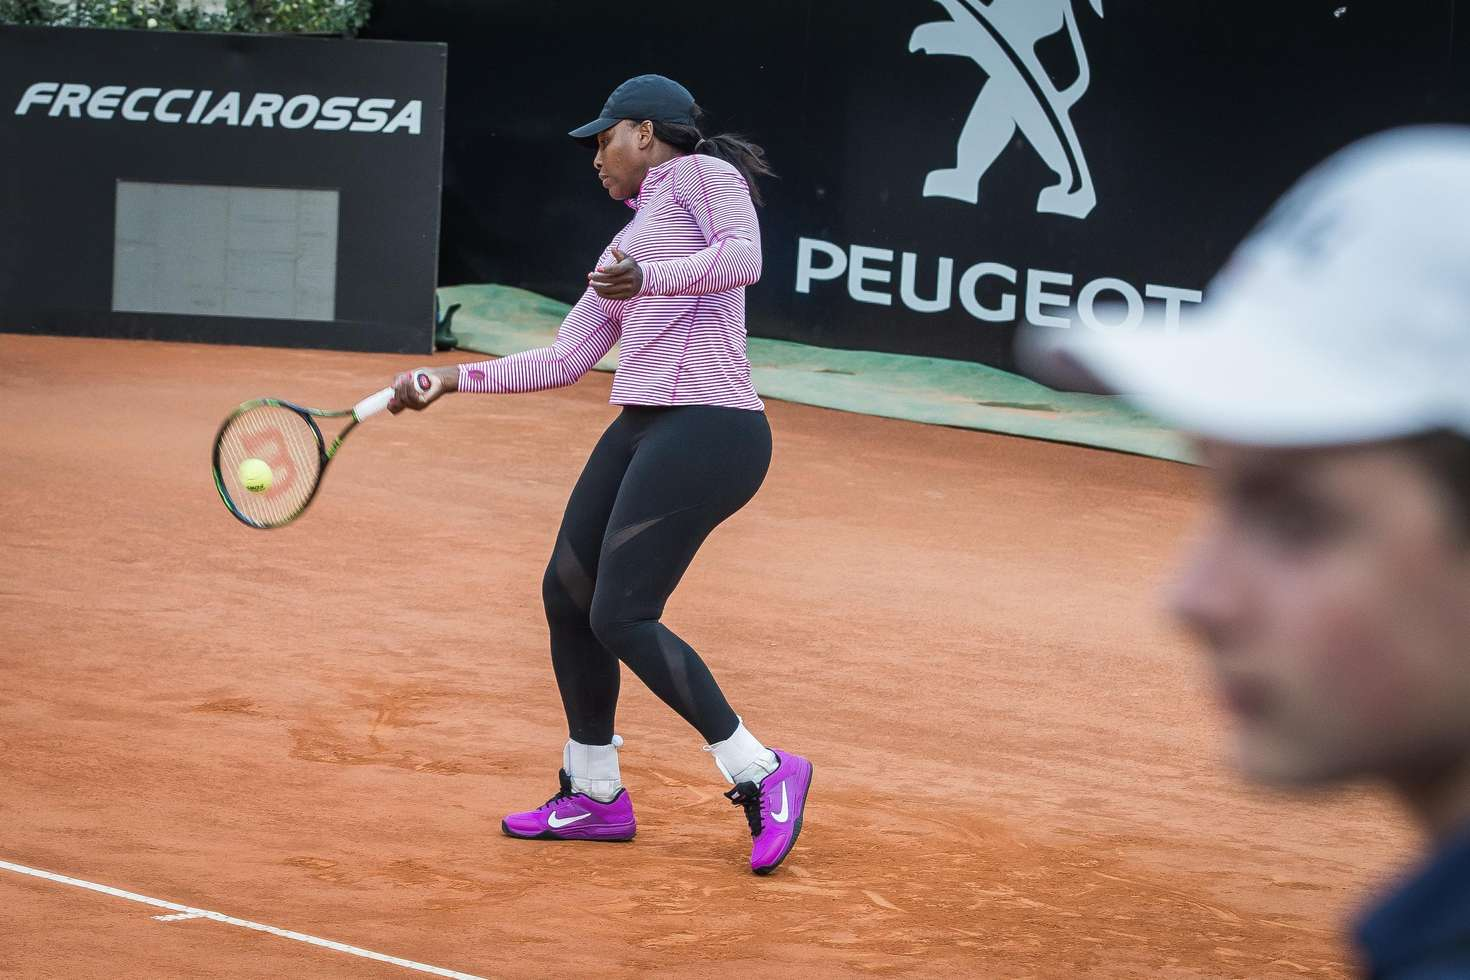 Serena Williams Training at the Center Court in Rome